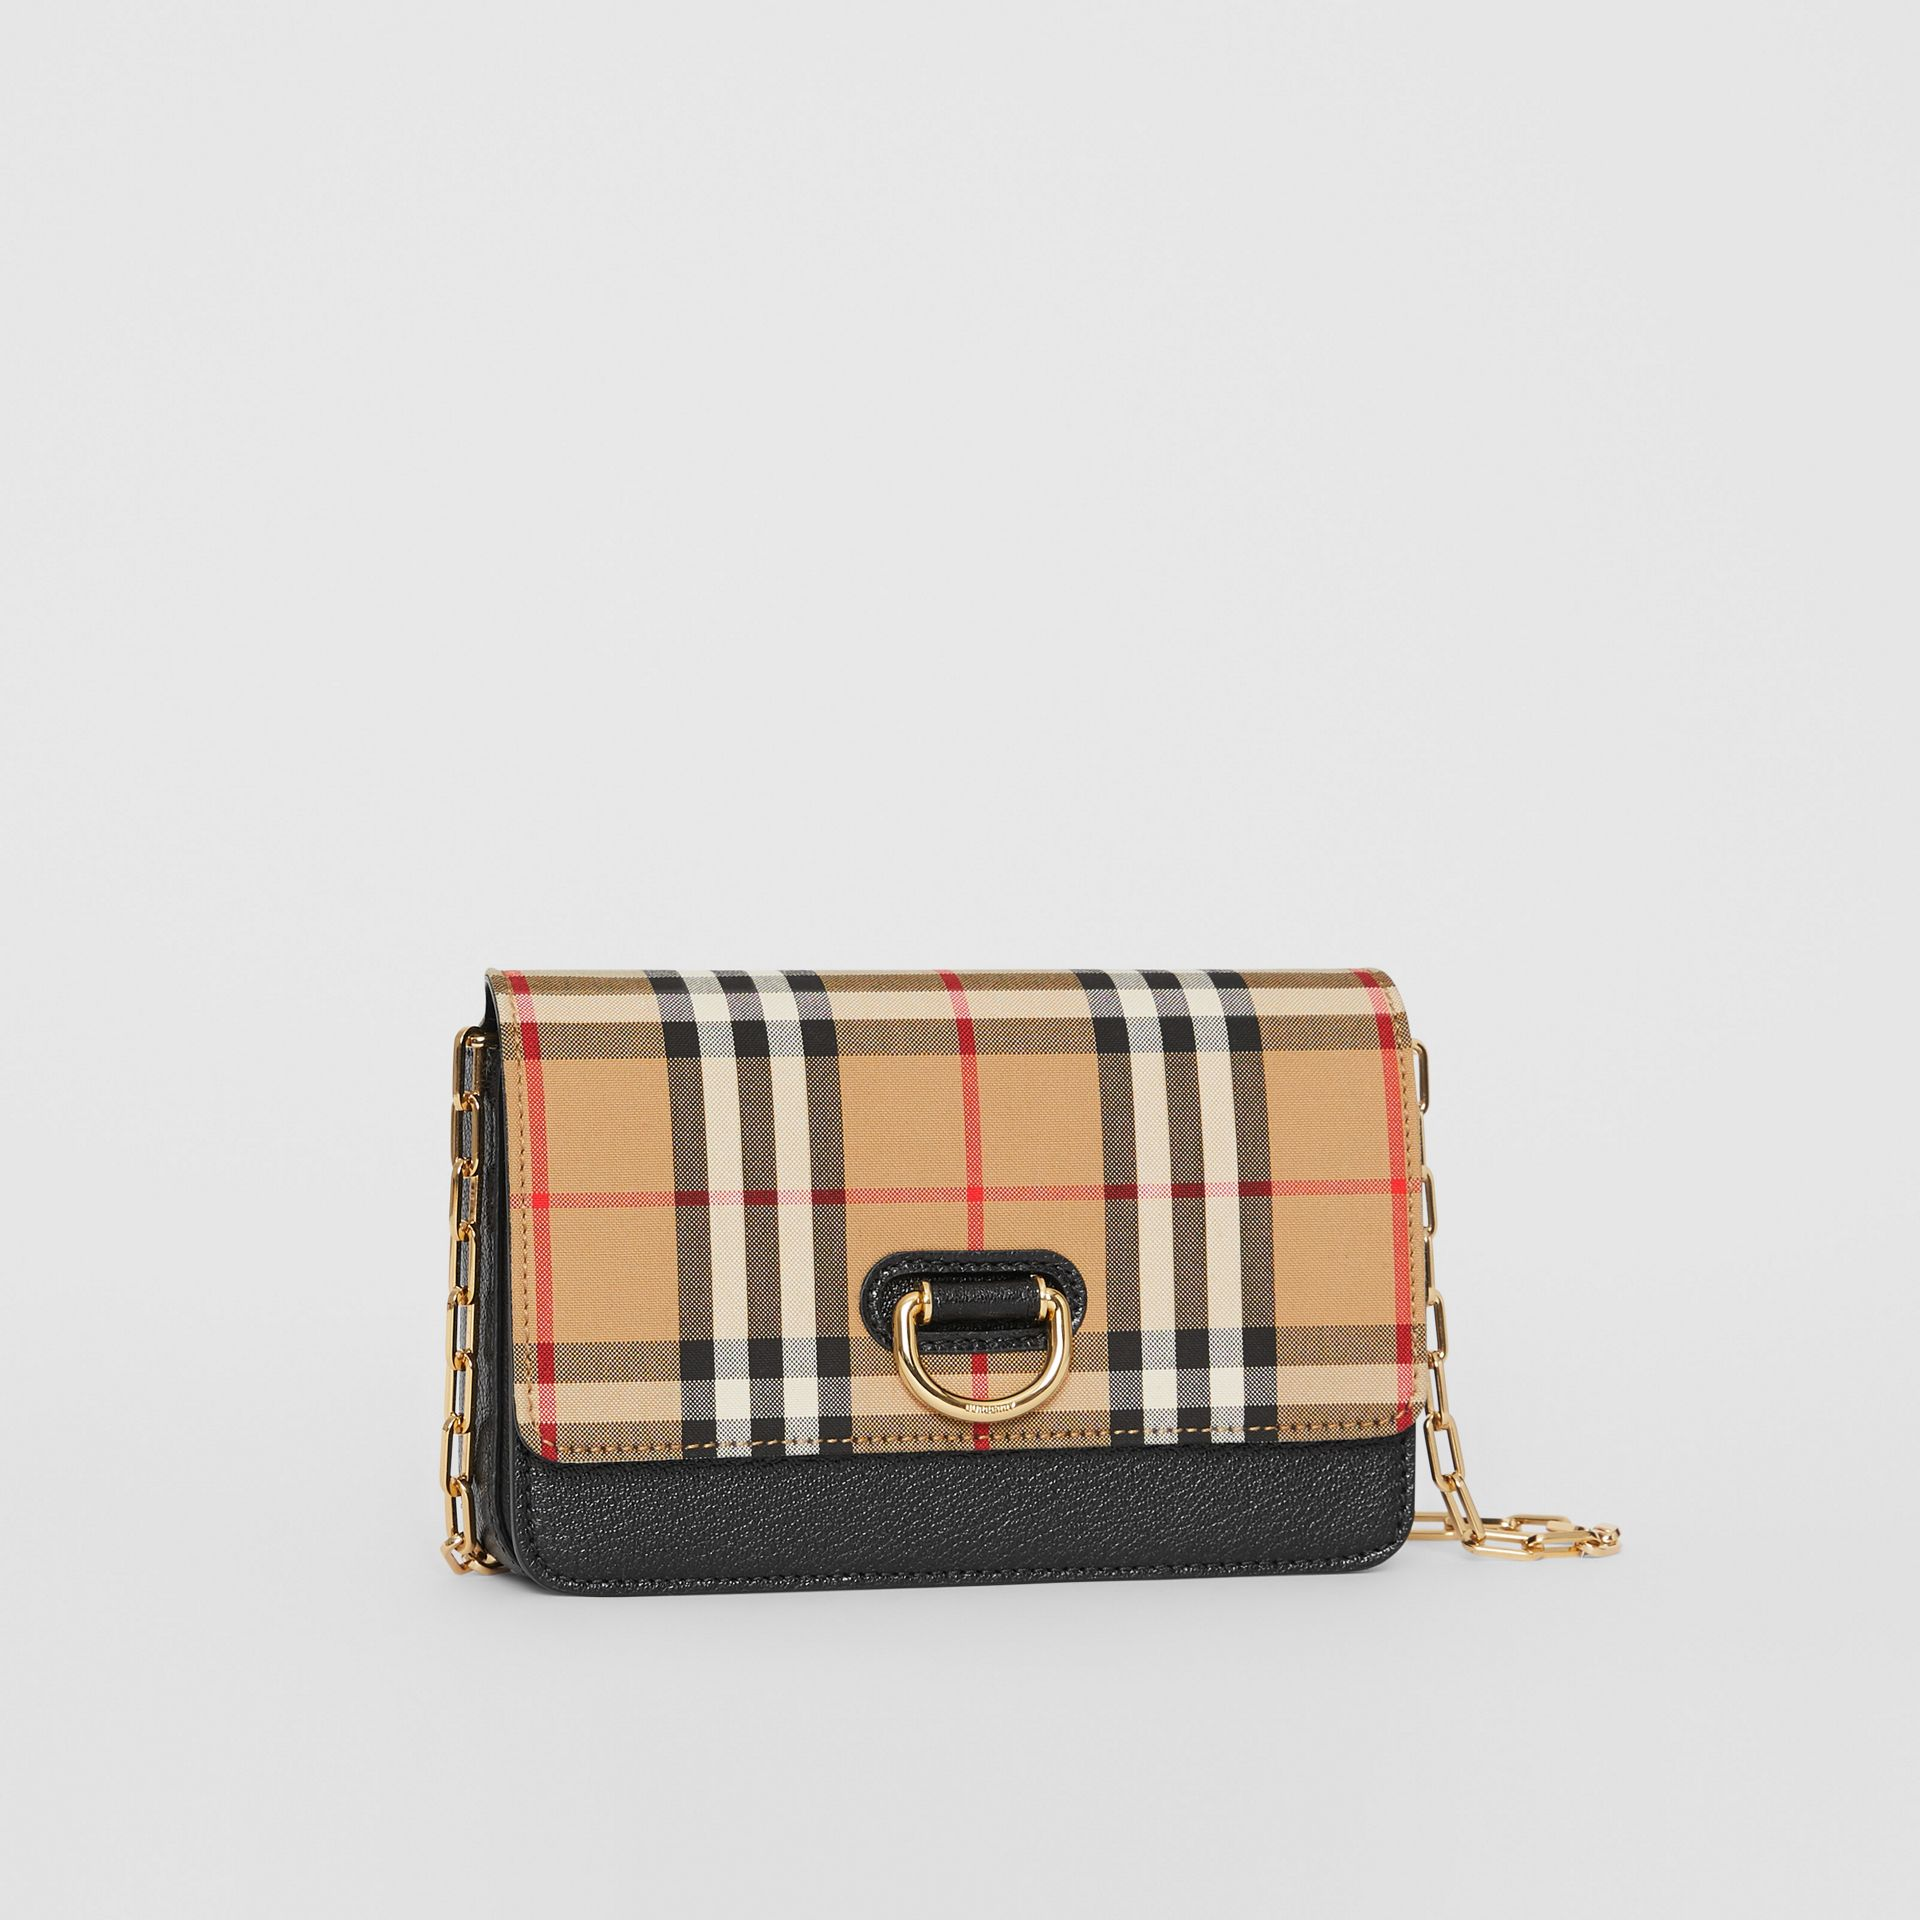 The Mini Vintage Check and Leather D-ring Bag in Black - Women | Burberry United States - gallery image 6